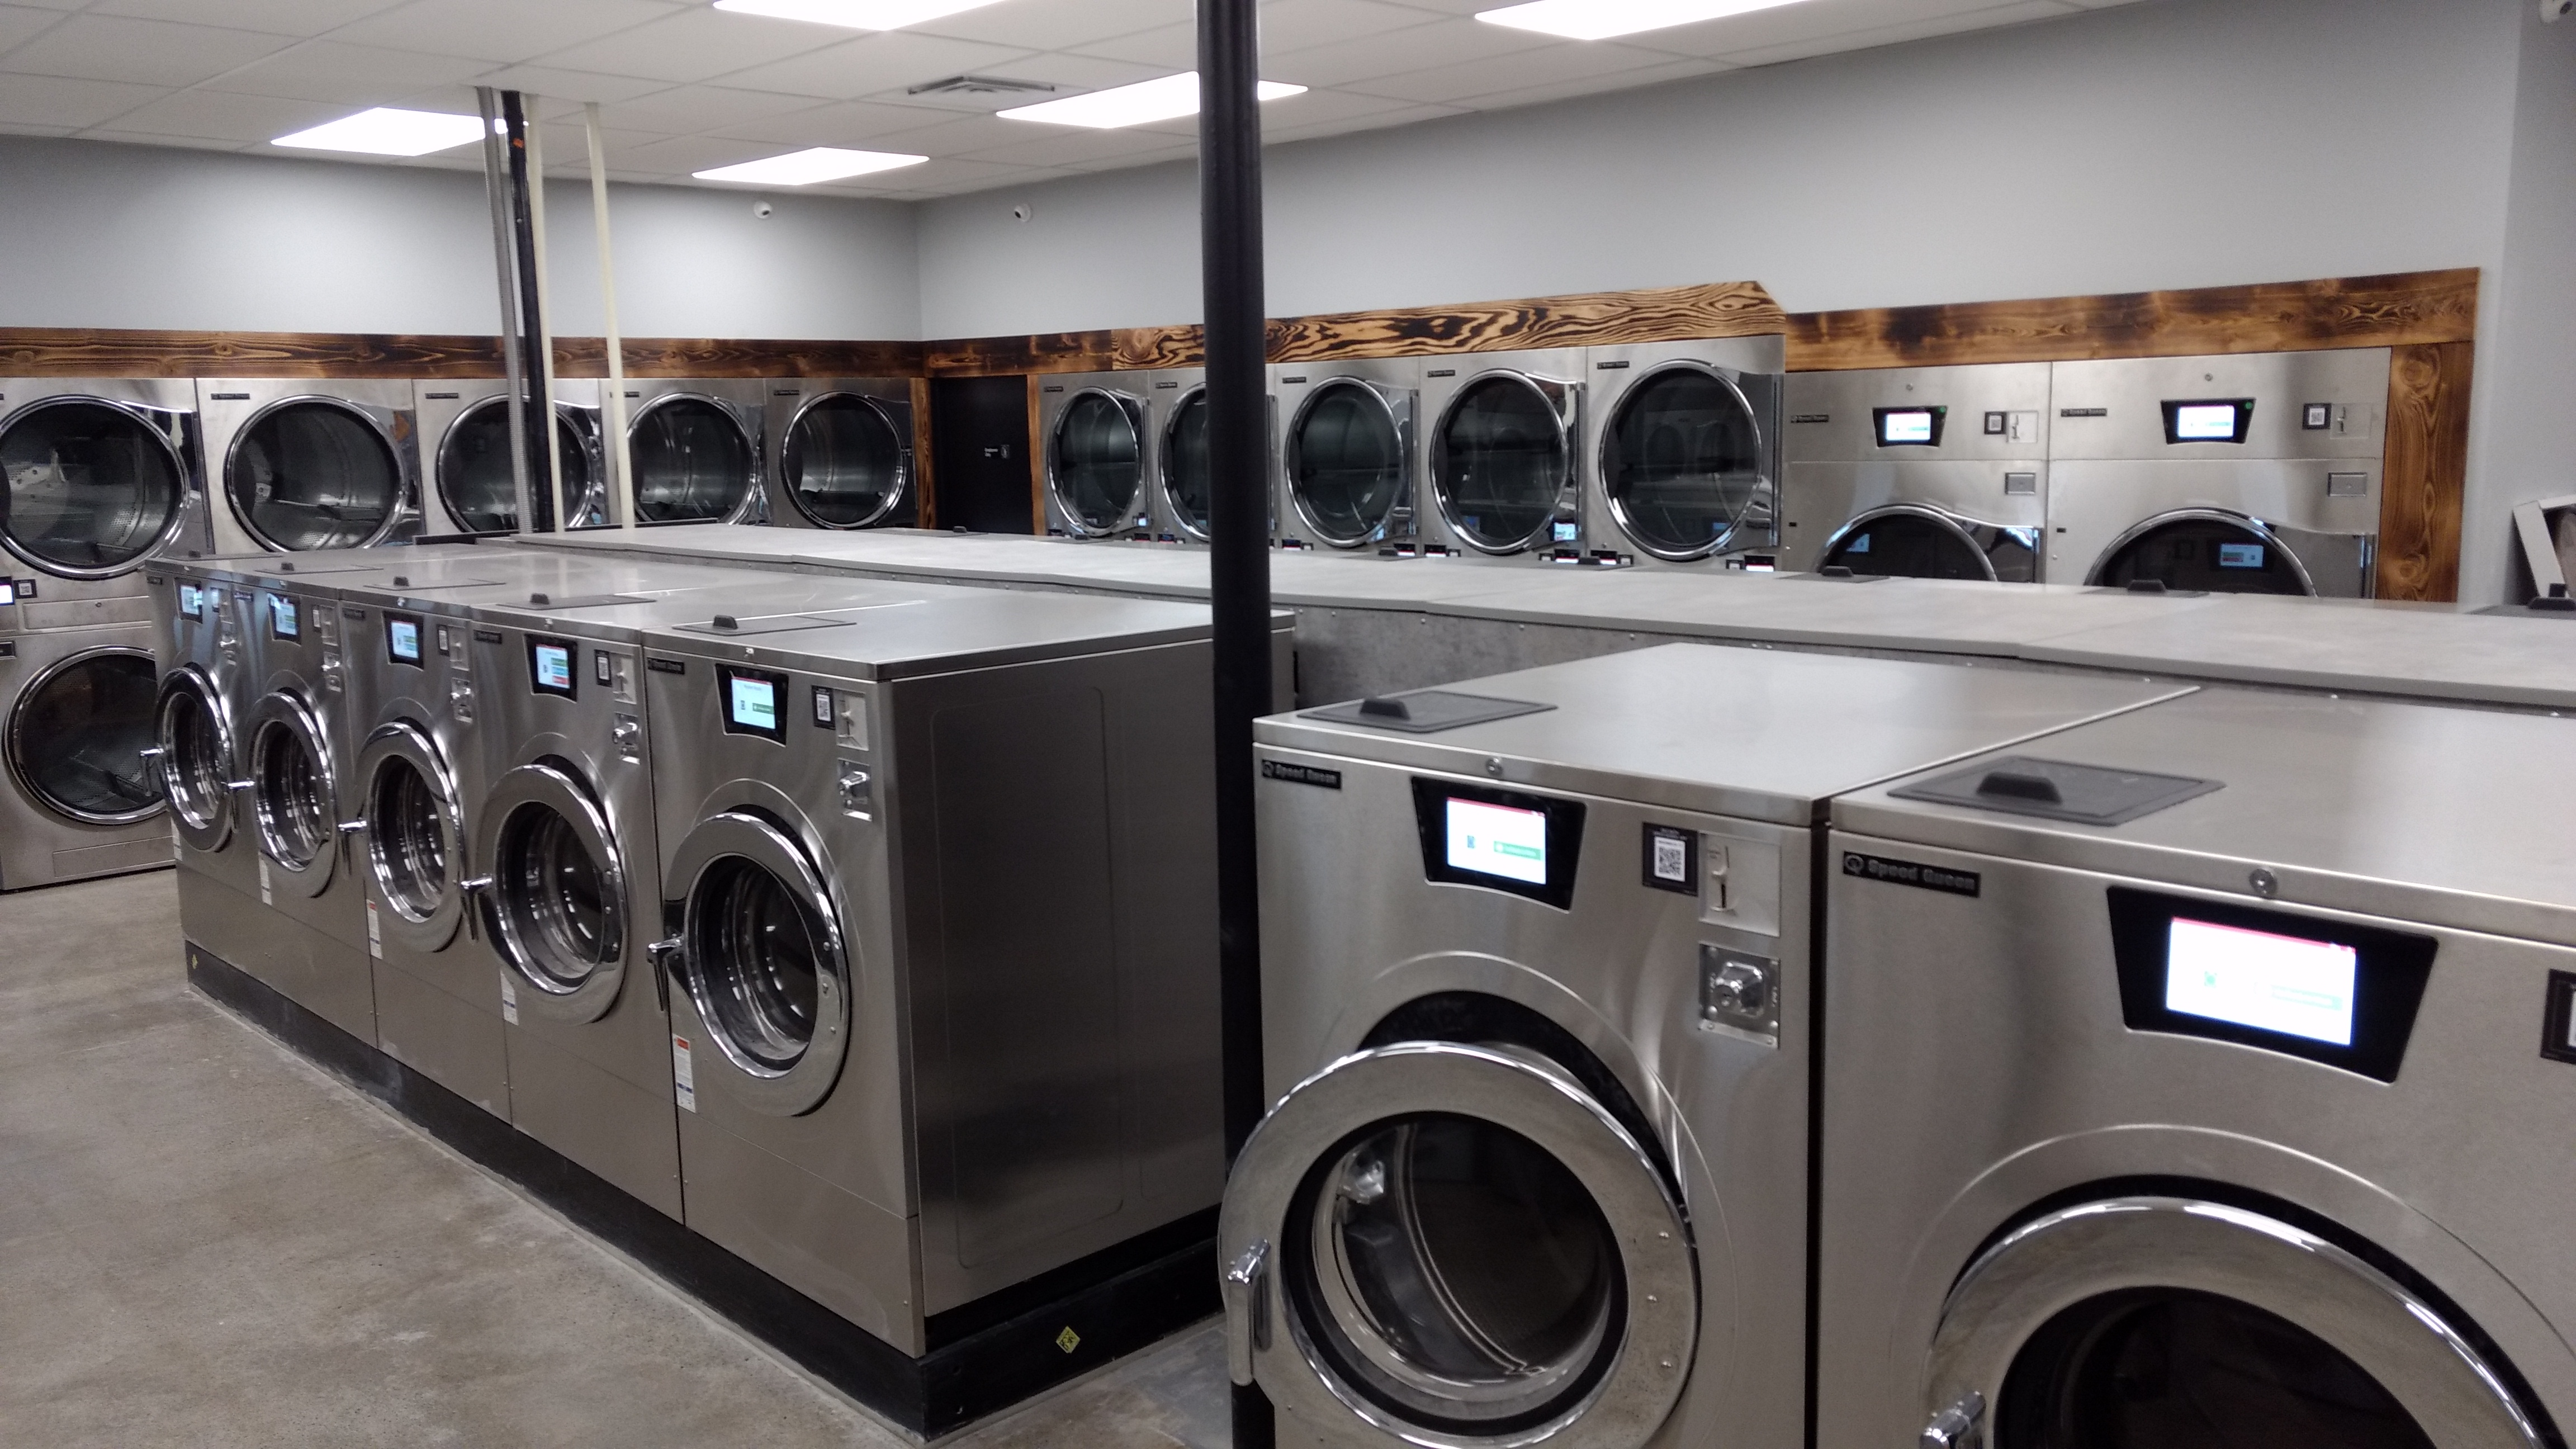 Interior of Ferndale Laundry just before opening their doors (November 29, 2019). Photo: My Ferndale News